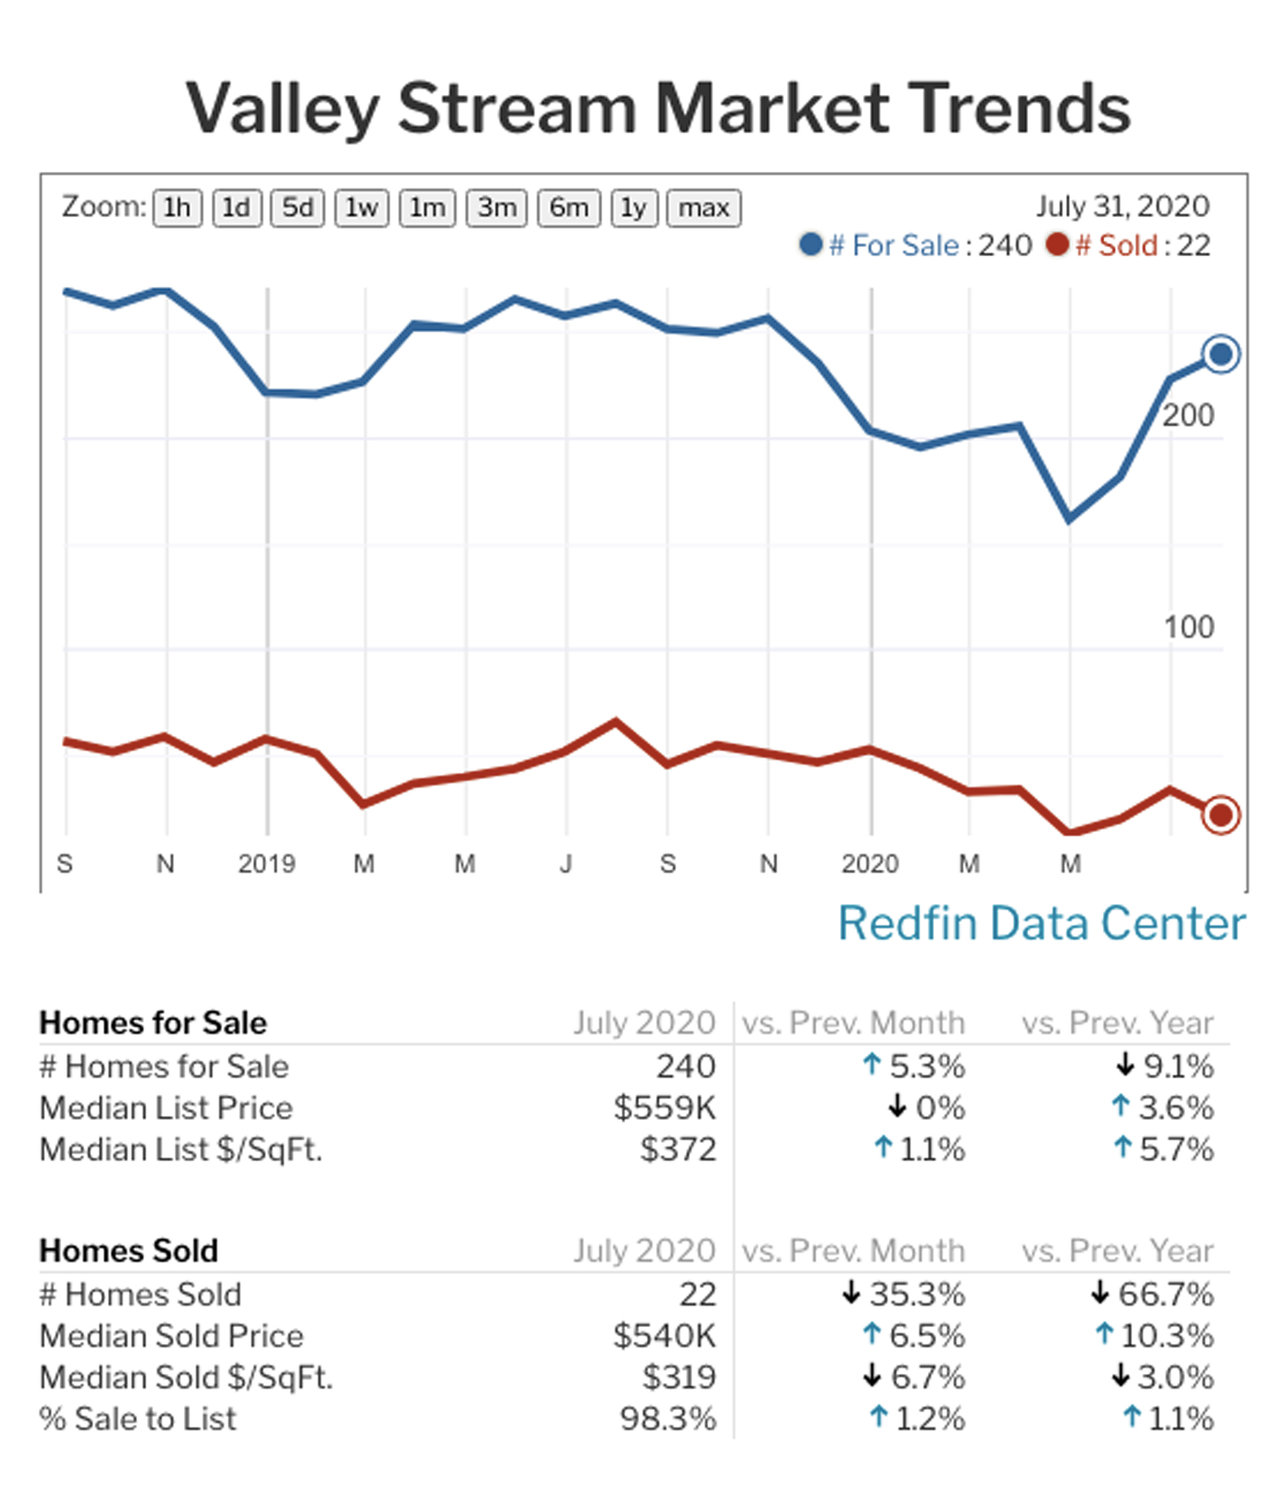 Home sales in Valley Stream rebounded after a steep decline in April.